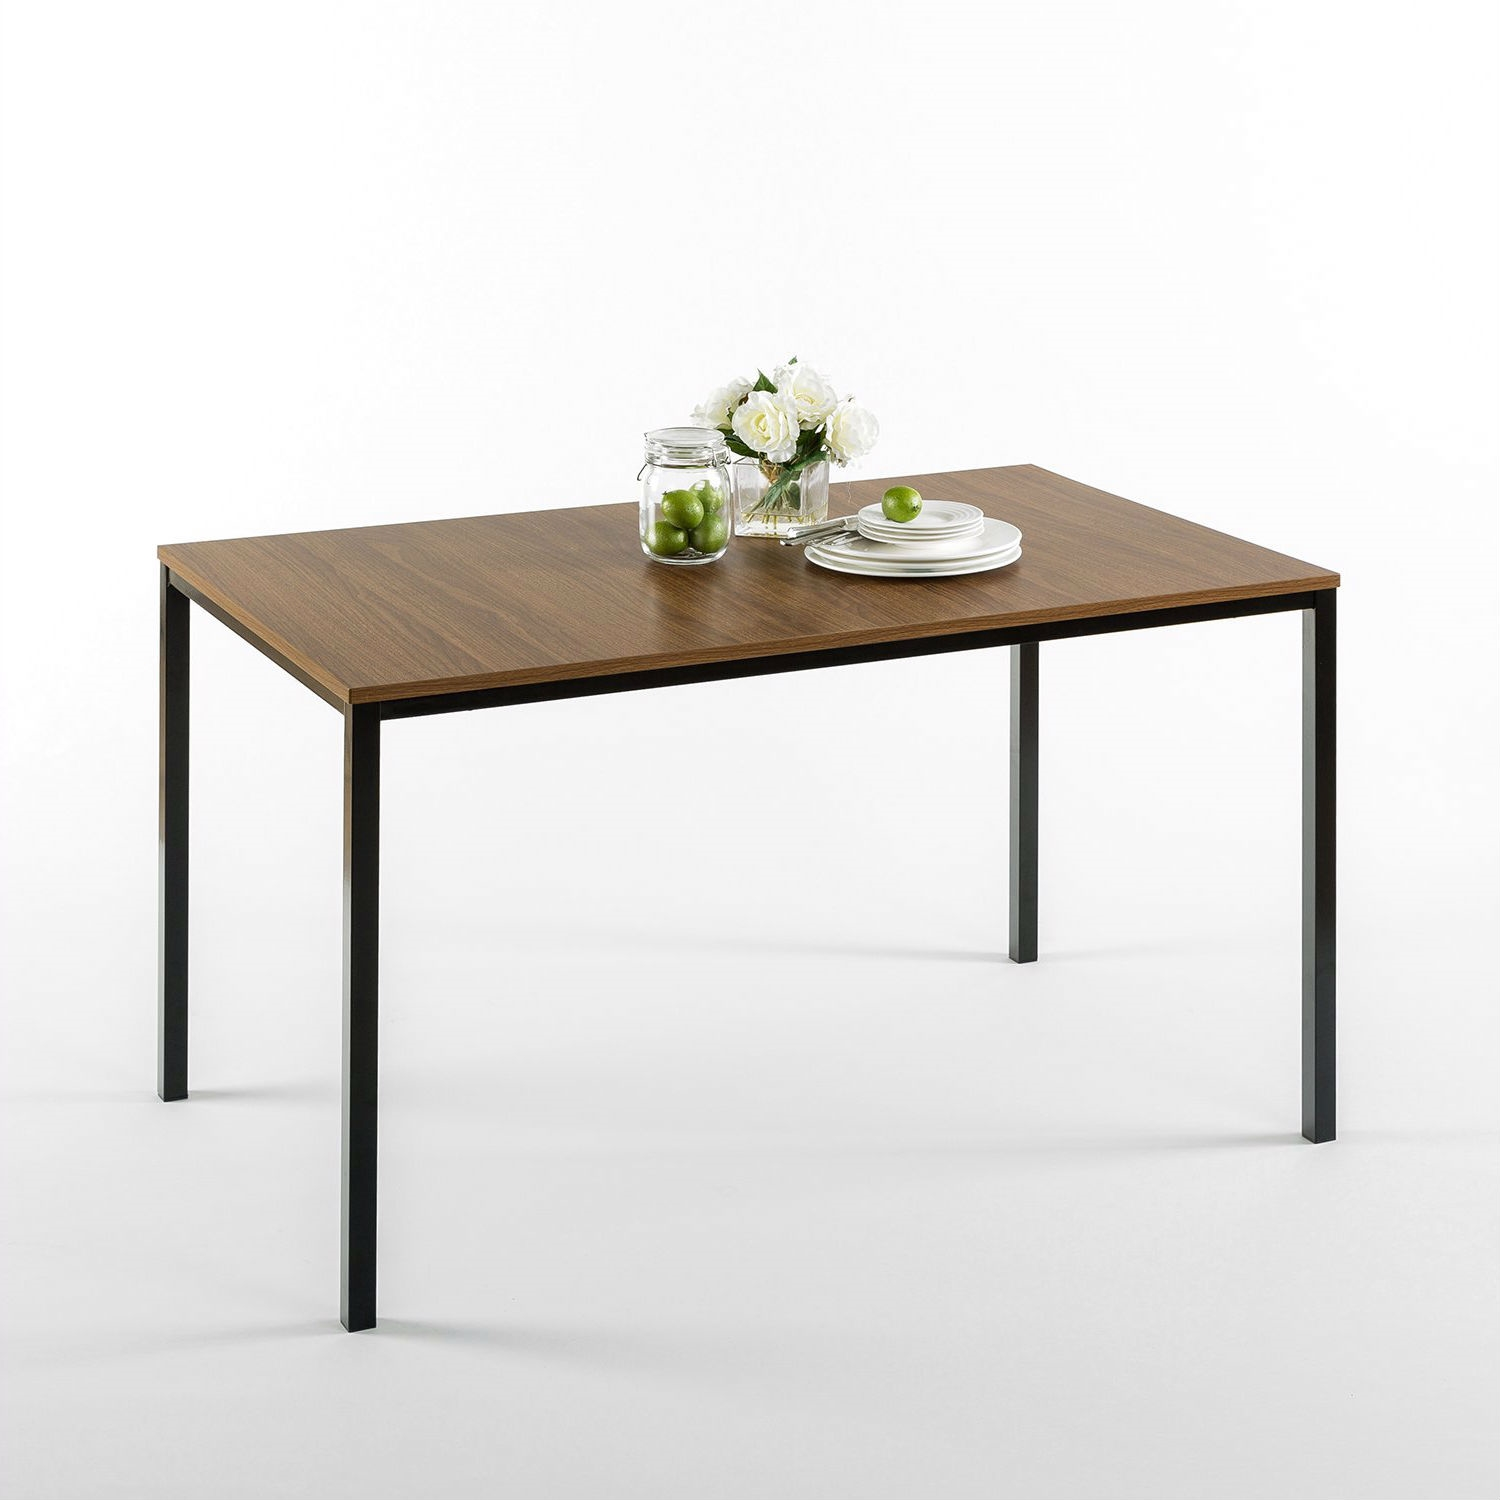 Modern 48 x 30 inch Steel Frame Dining Table with Wood Grain Top ...